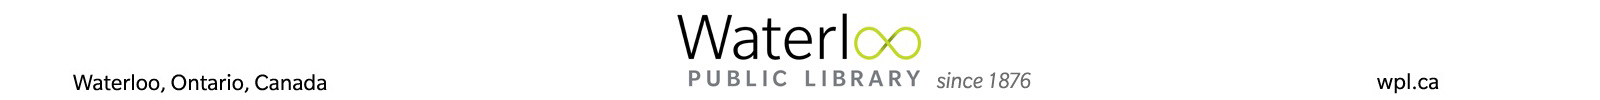 Waterloo Public Library Digital Collection